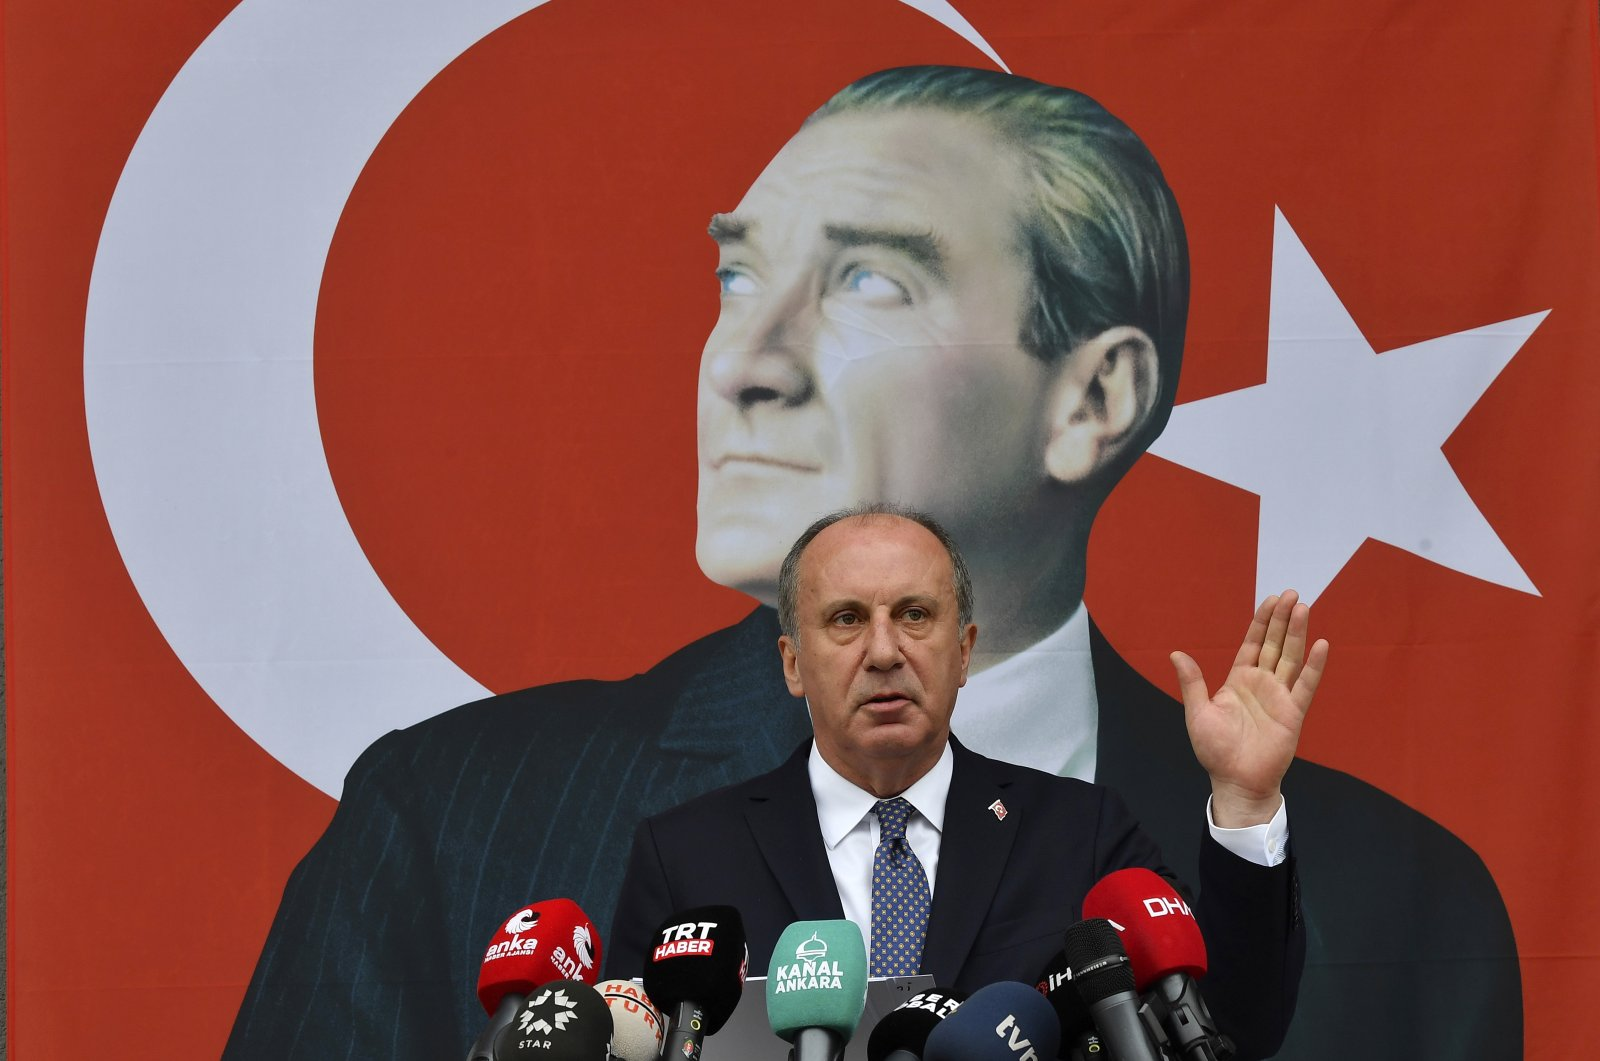 Muharrem Ince, a politician who once ran as a presidential challenger to Turkish President Recep Tayyip Erdoğan, speaks in front of a poster of modern Turkey's founder, Mustafa Kemal Atatürk, during a news conference in Ankara, Turkey, Monday, Feb. 8, 2021. (AP File Photo)